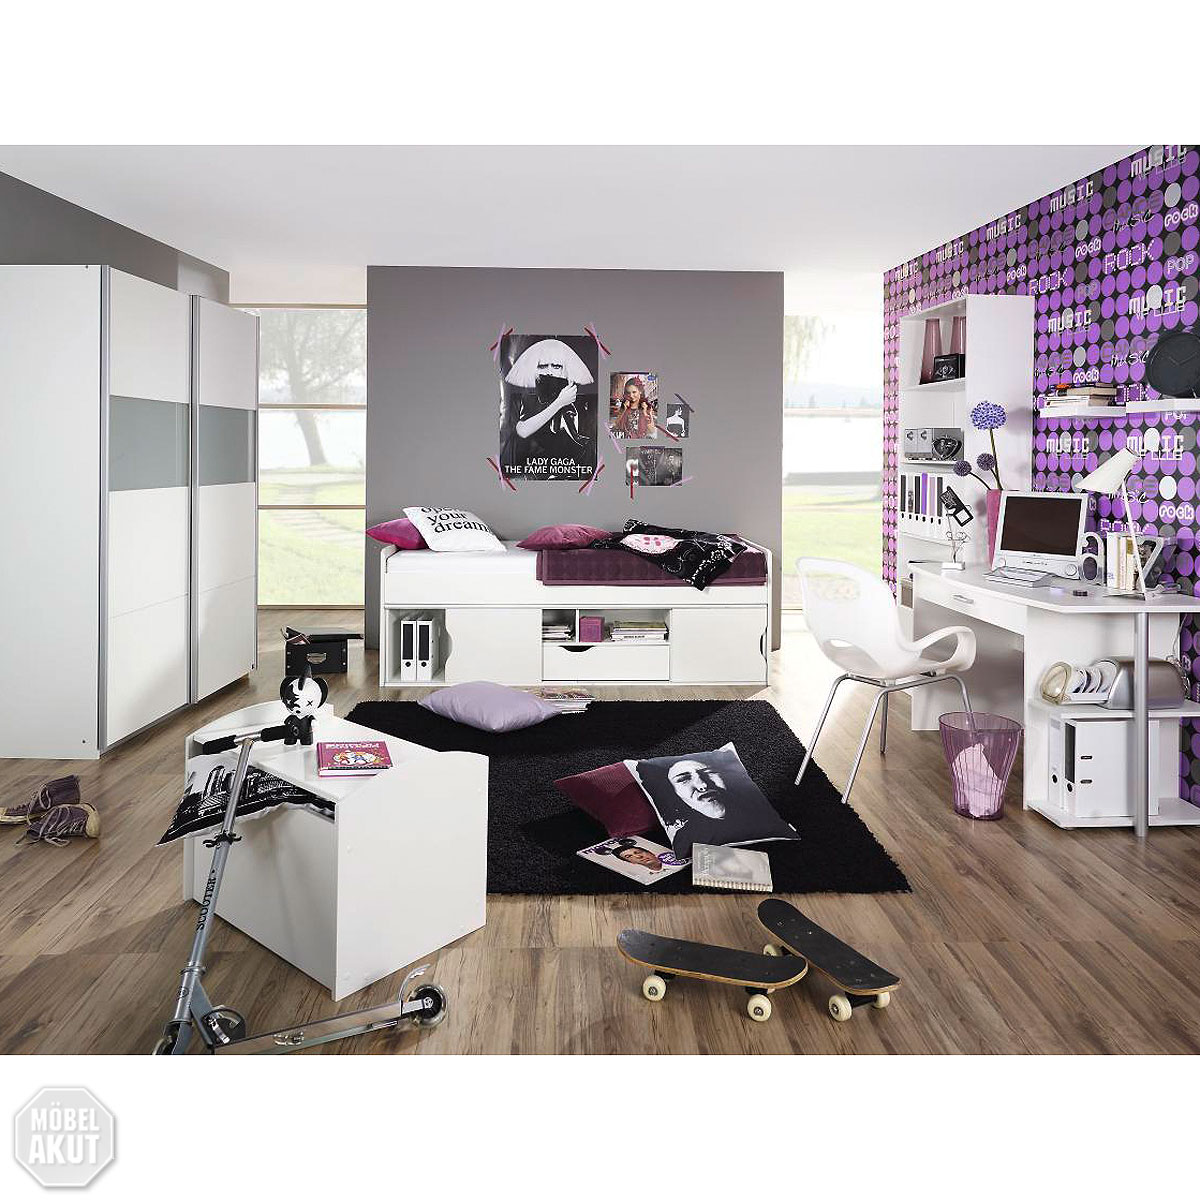 jugendzimmer set point kinderzimmer bett schrank. Black Bedroom Furniture Sets. Home Design Ideas